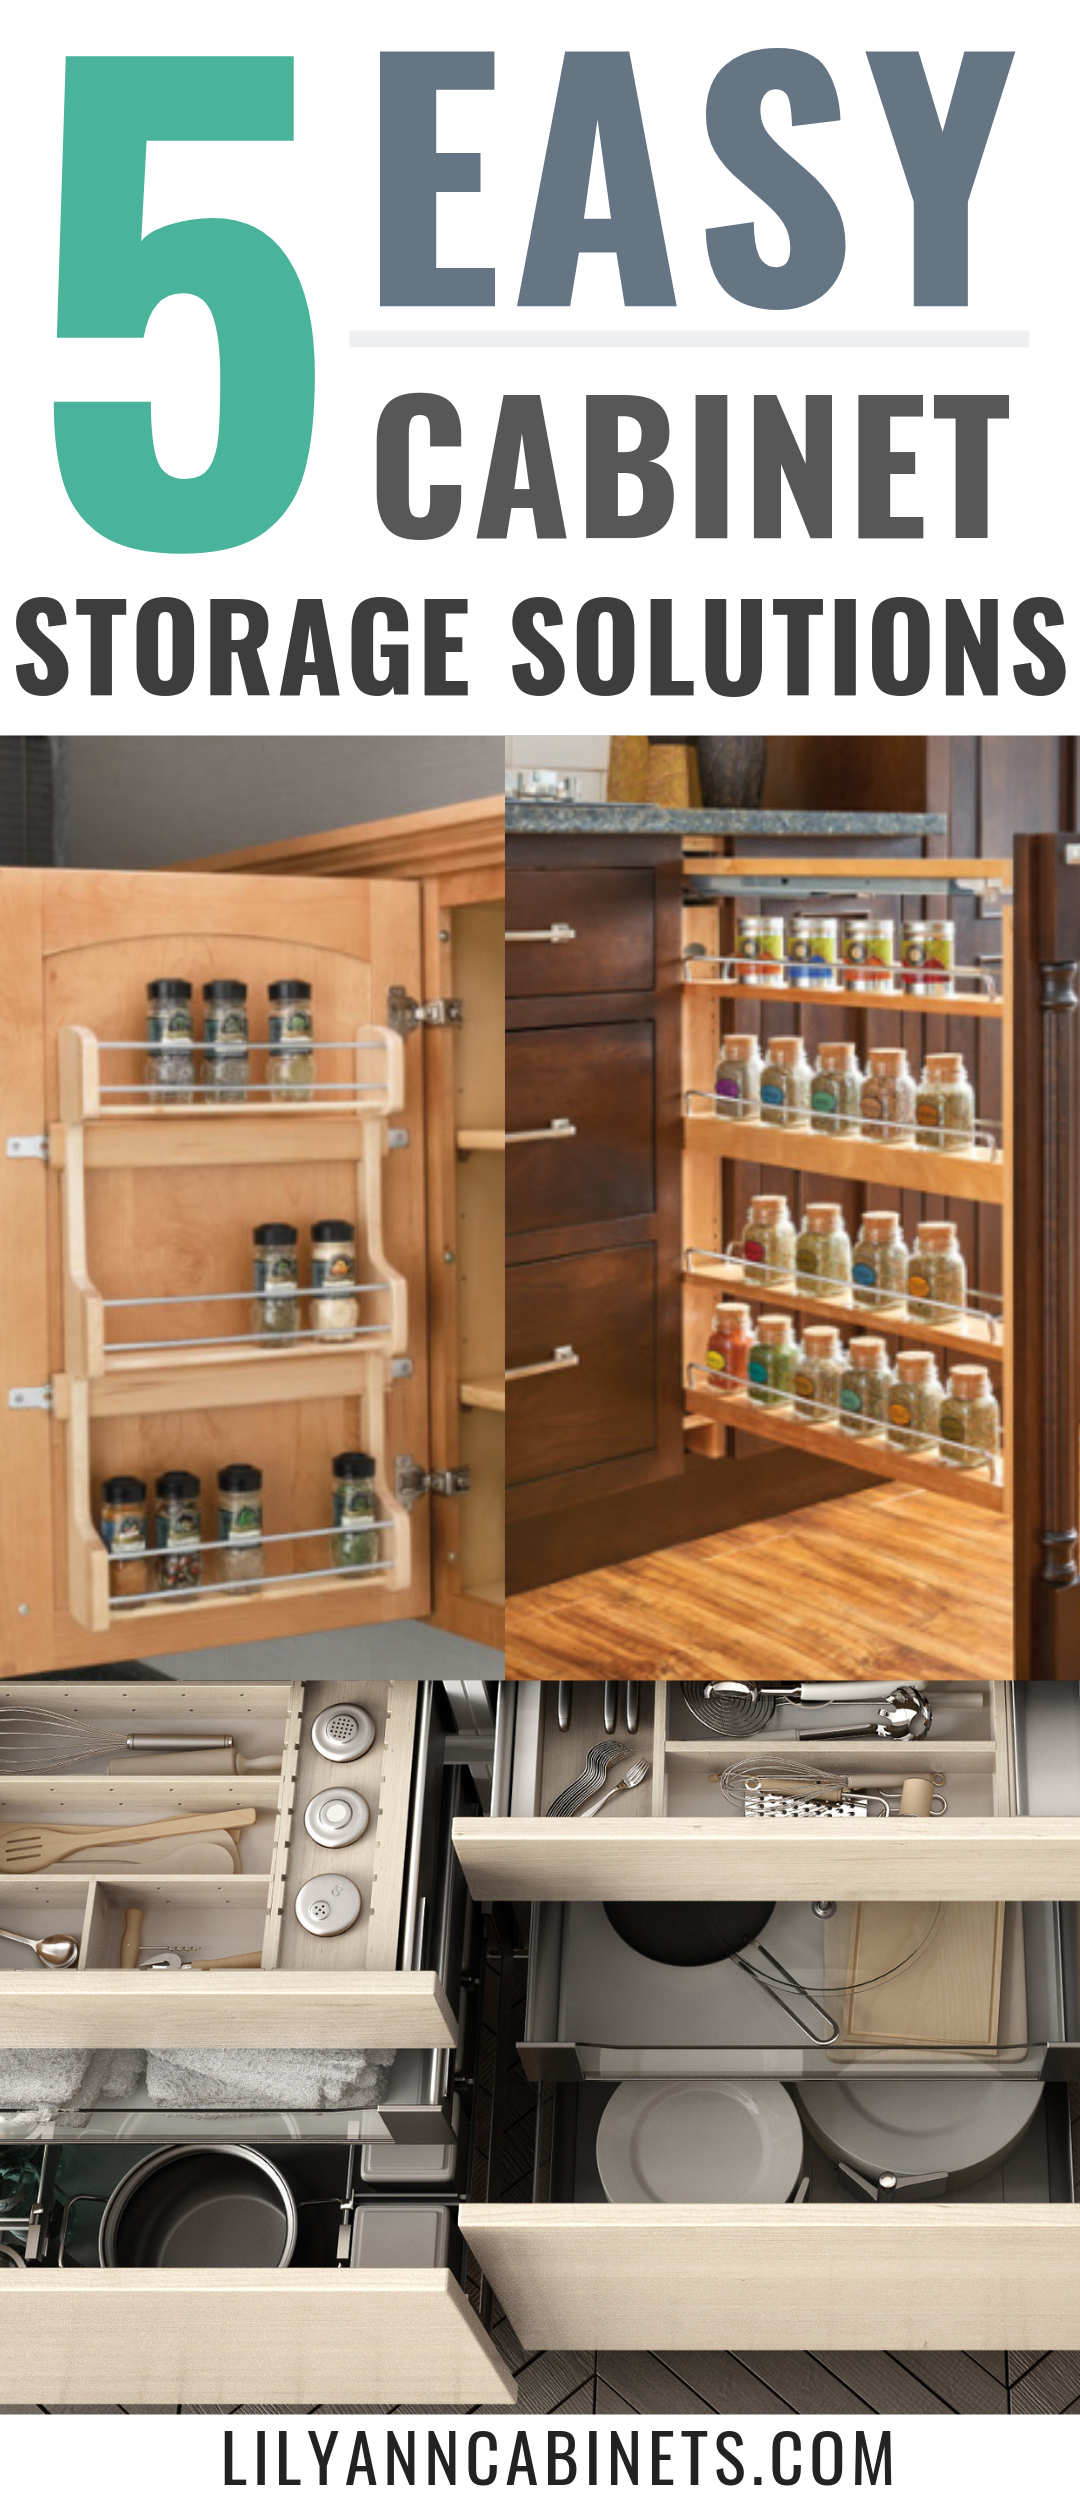 5 Clever Rta Cabinet Features That Can Help You Save Space In Your Kitchen Kitchen Organization Diy Cabinet Storage Solutions Kitchen Organization